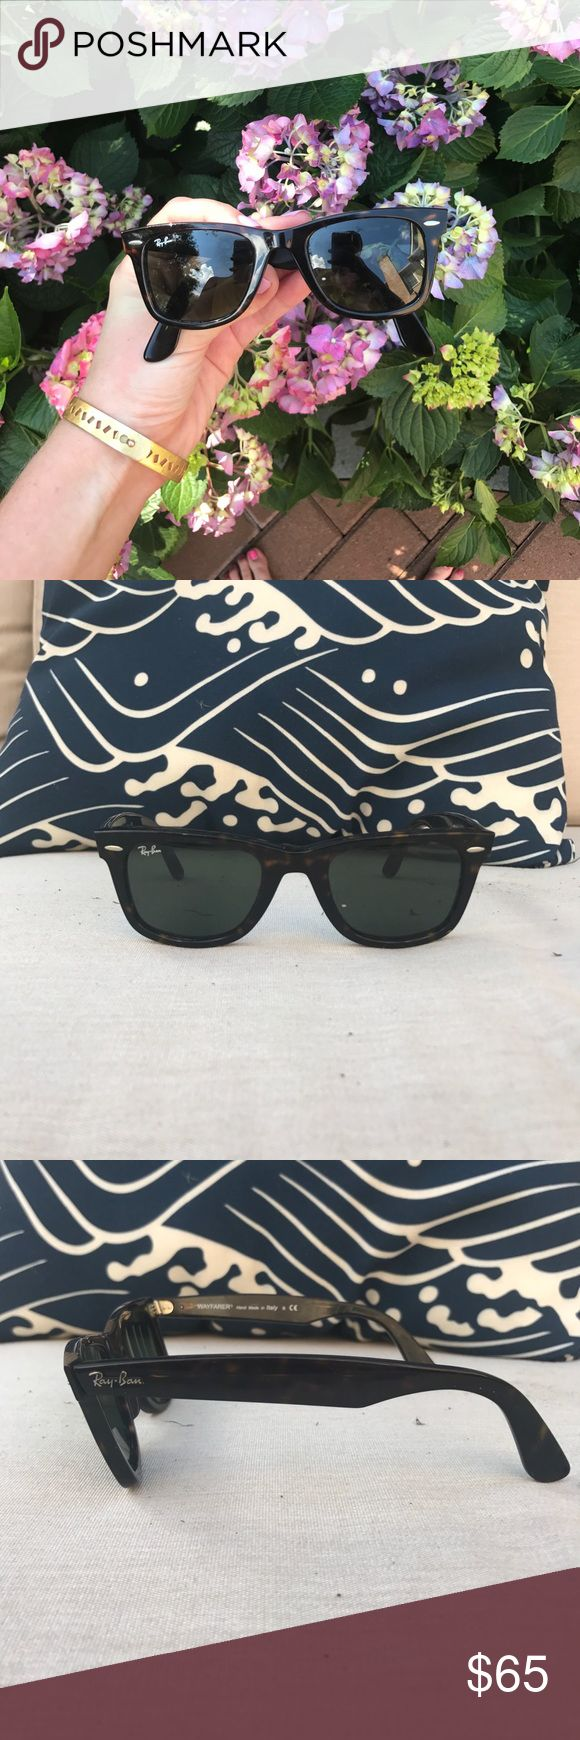 Ray-Ban Wayfarer Tortoise Classic tortoise Ray-Ban Wayfarers. Perfect for any season, completes every outfit. Gently worn in perfect condition.Unisex. Ray-Ban Accessories Sunglasses